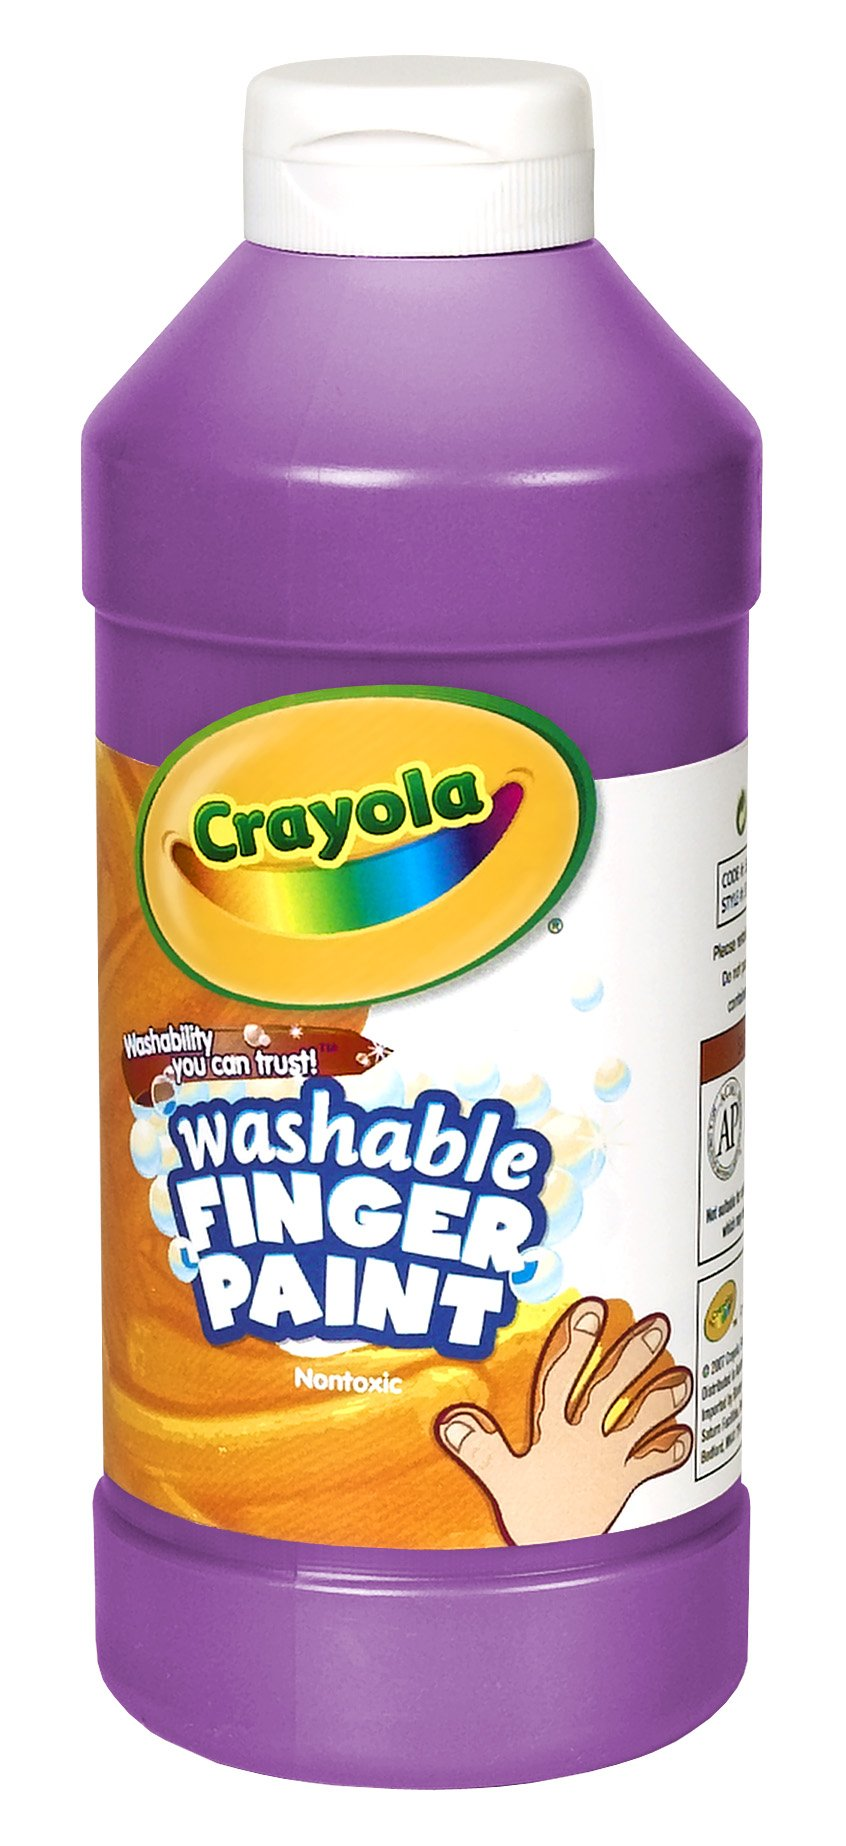 Can I Use Crayola Washable Paint On Skin